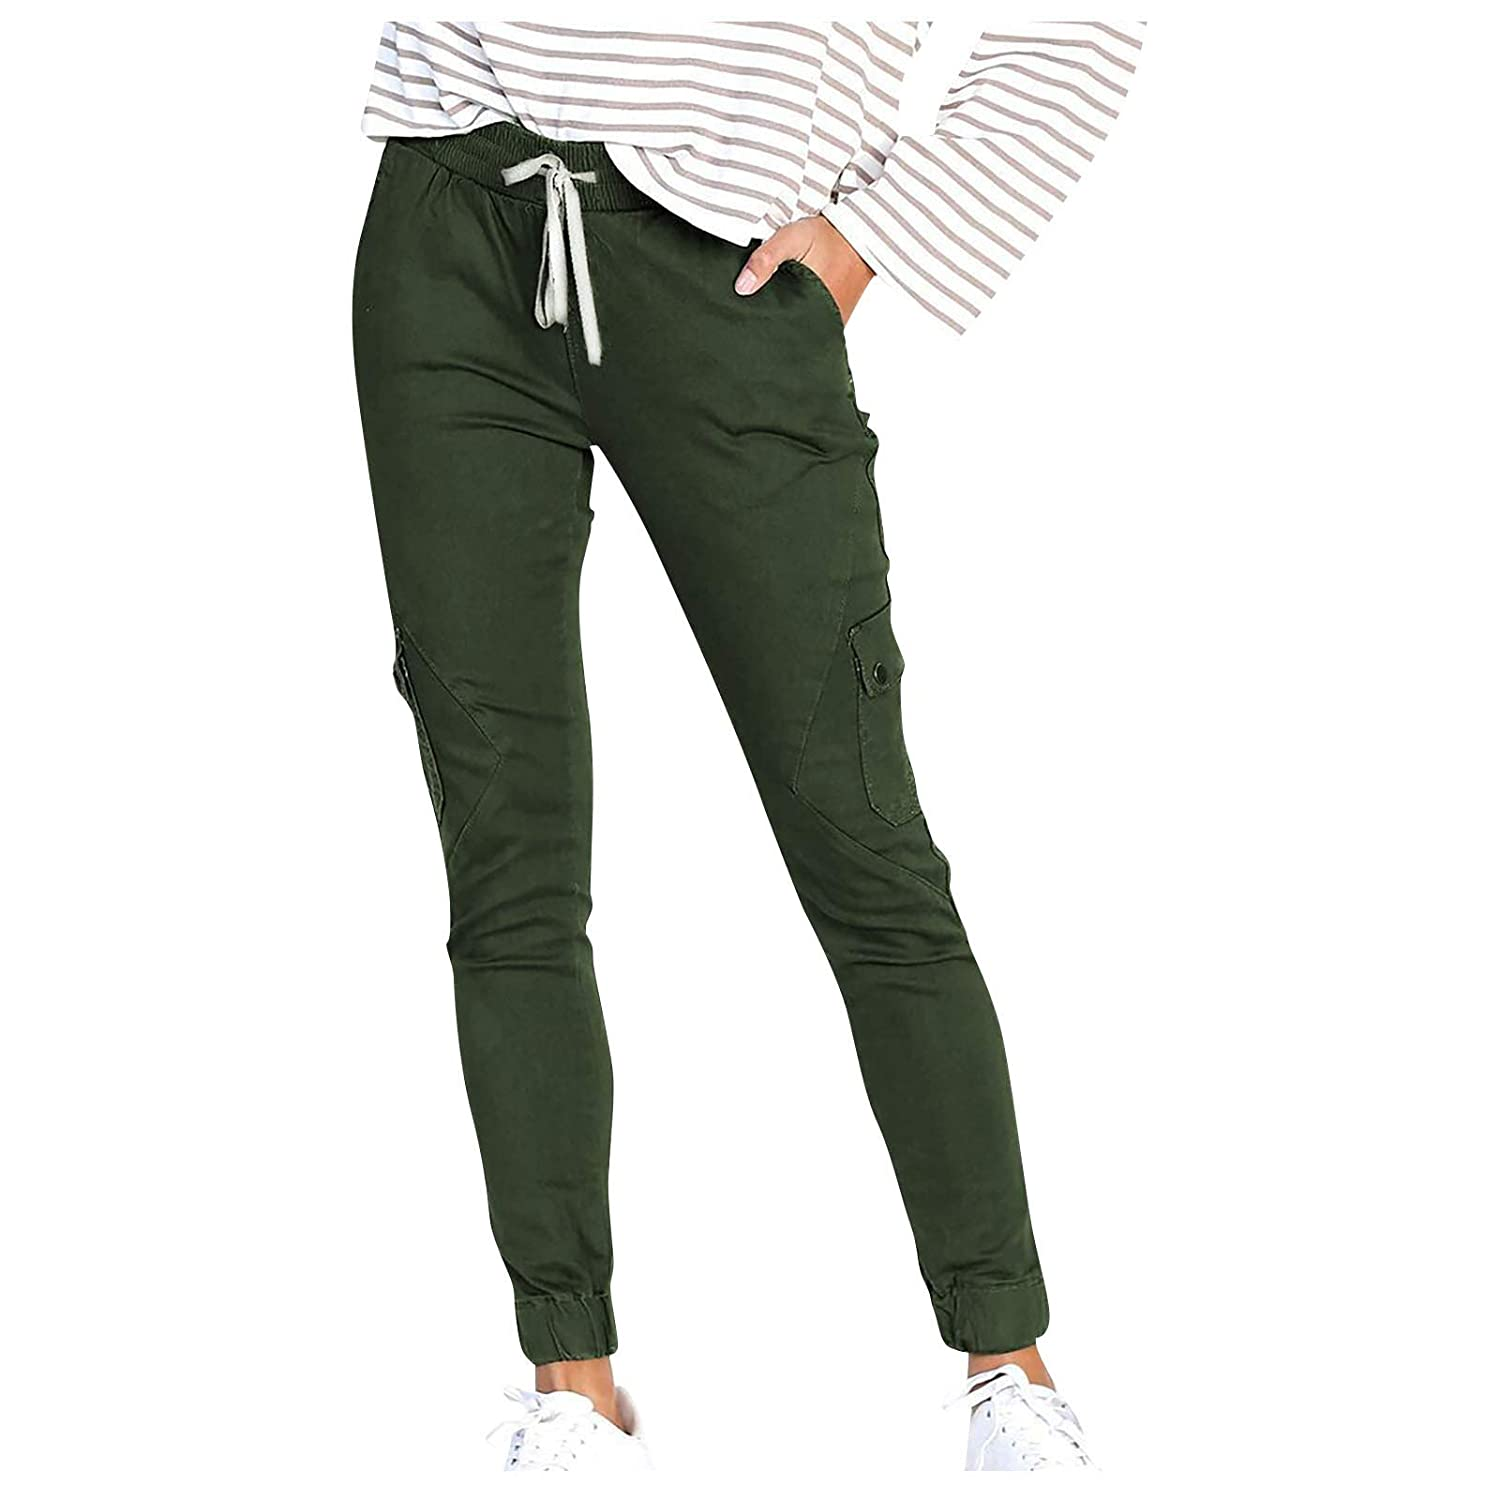 SANYEE Womens Casual High Waist Pencil Pants with Bow-Knot Pockets for Work Paper Bag Waist Pants